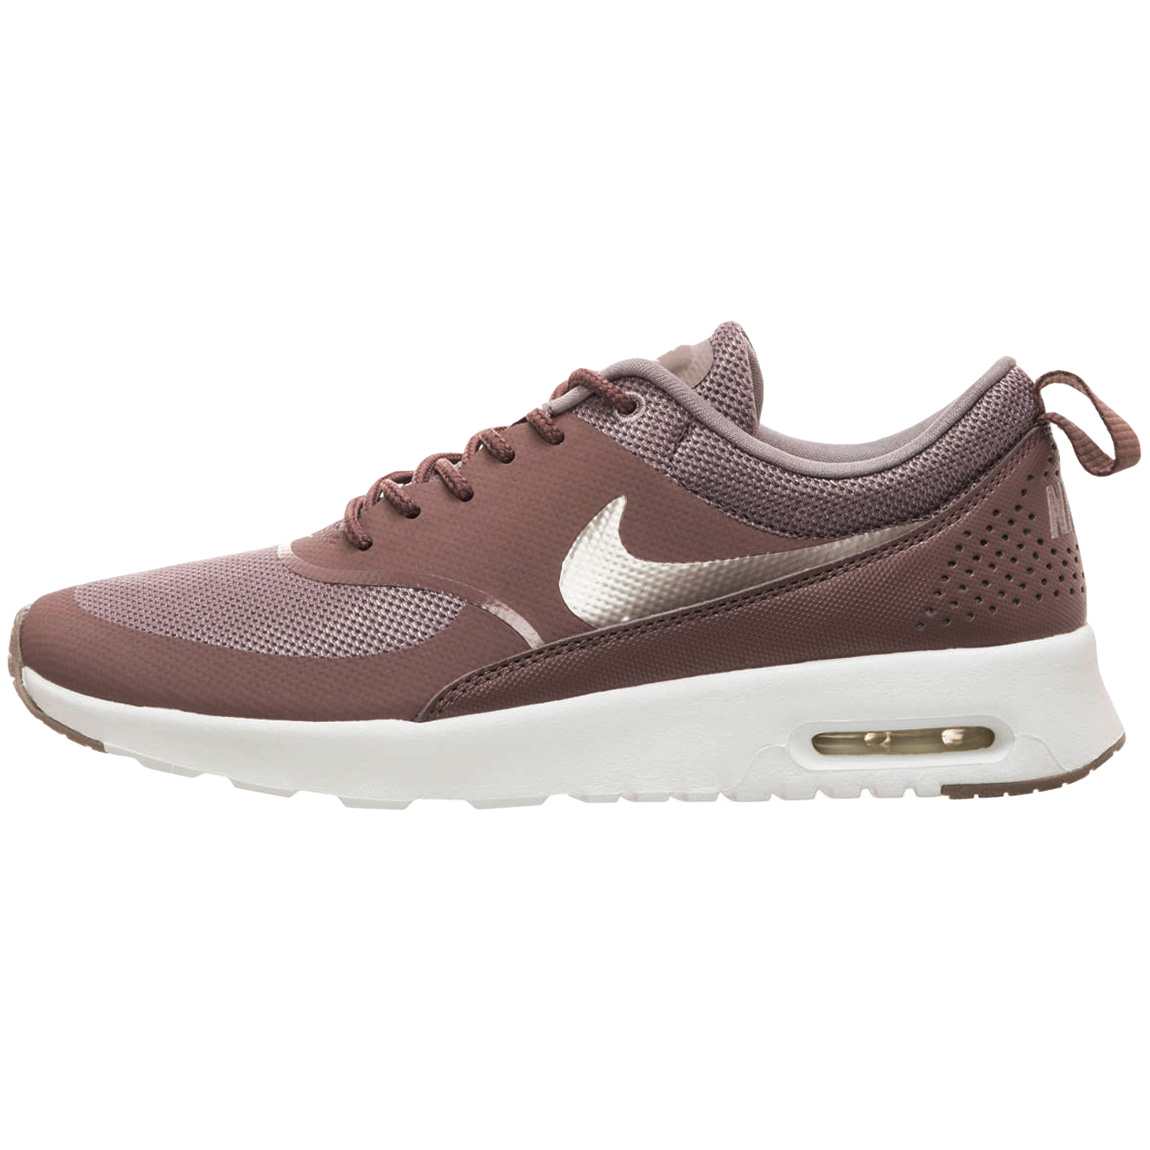 Nike Air Max Thea in braun 599409 805 | everysize